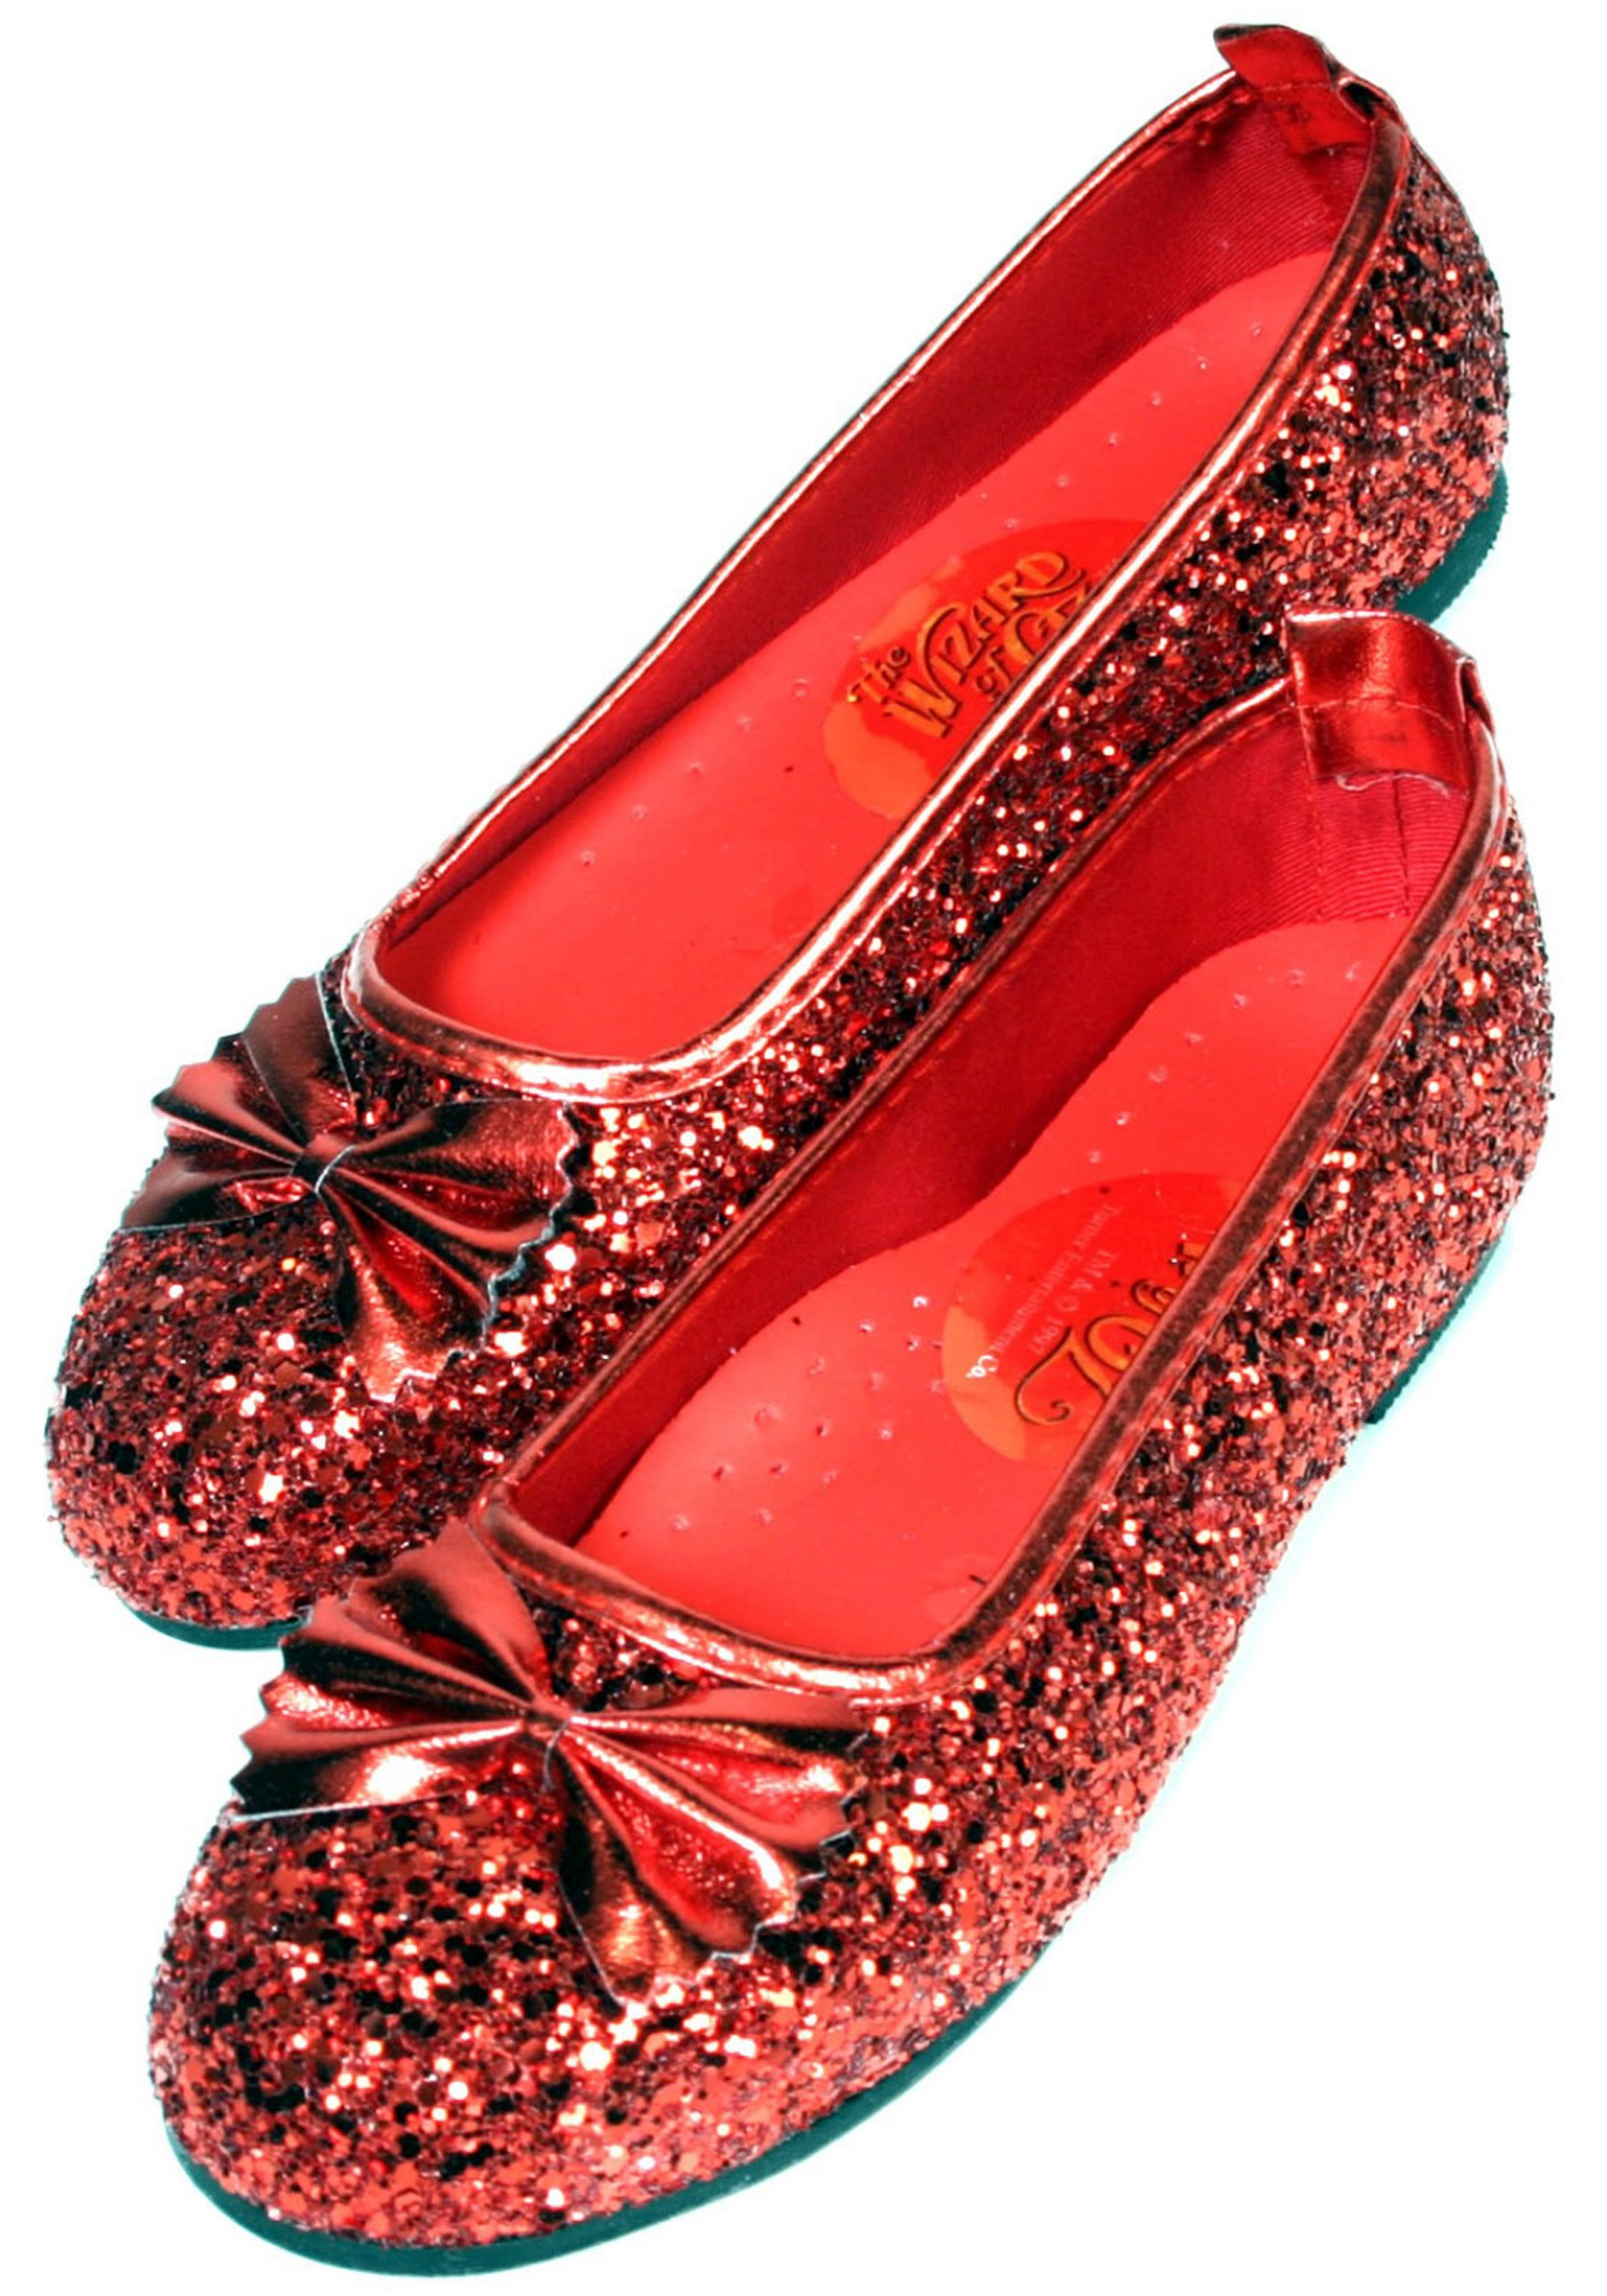 Kids & Baby Shoes. All Girls Shoes. Girls' Red Shoes. Showing 48 of results that match your query. Search Product Result. Product - Wonder Nation Girls' Casual Bow Flat. New. Product Image. Price $ 7. Product Title. Wonder Nation Girls' Casual Bow Flat.